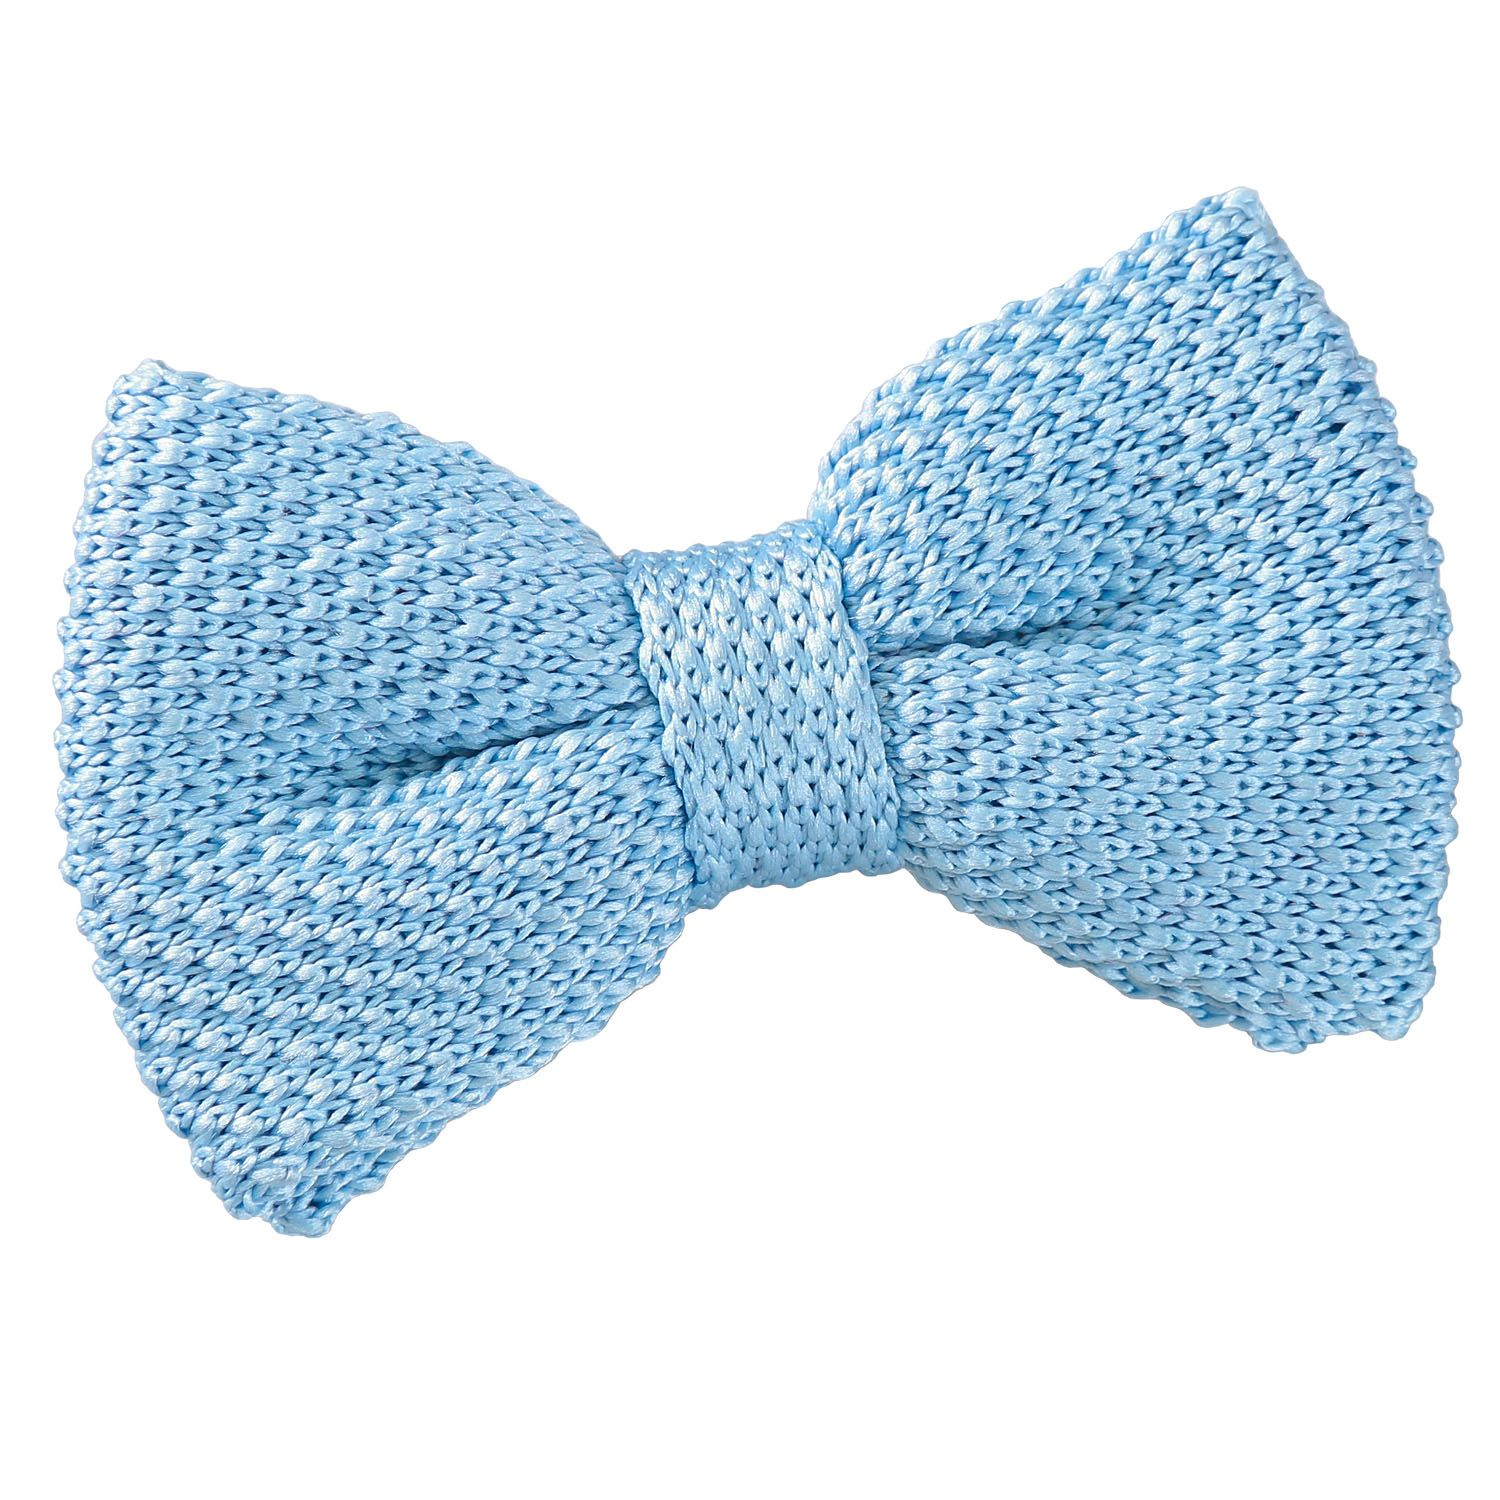 Baby Blue Knitted Pre-Tied Bow Tie for Boys   Boys bow ...